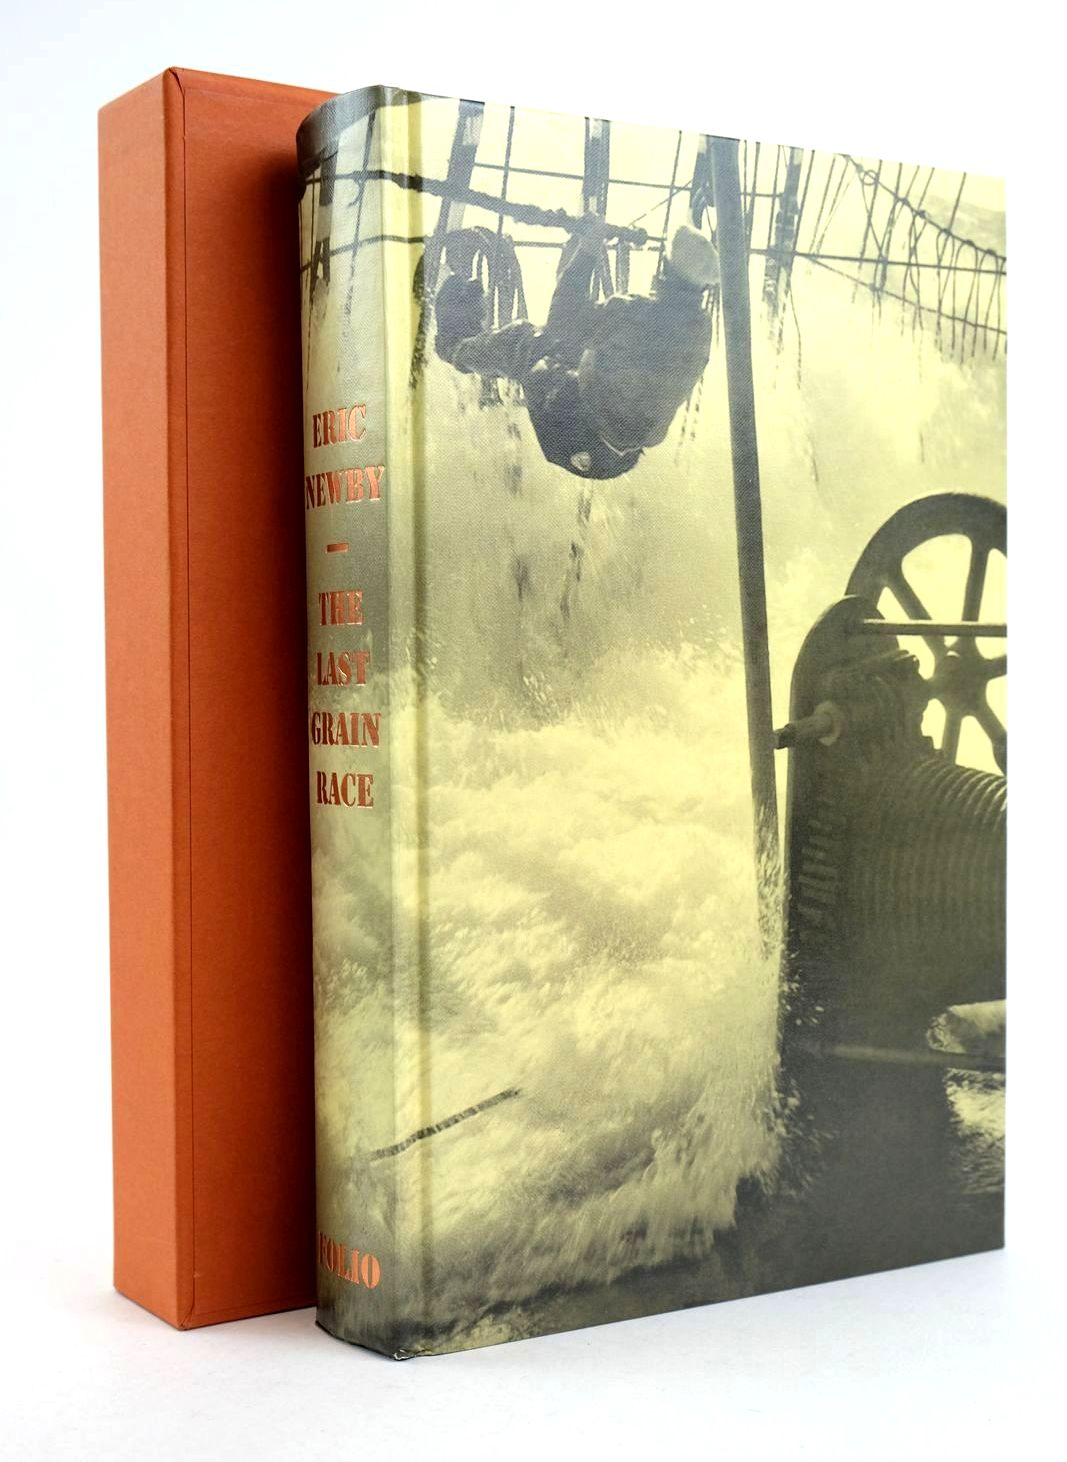 Photo of THE LAST GRAIN RACE written by Newby, Eric published by Folio Society (STOCK CODE: 1318853)  for sale by Stella & Rose's Books